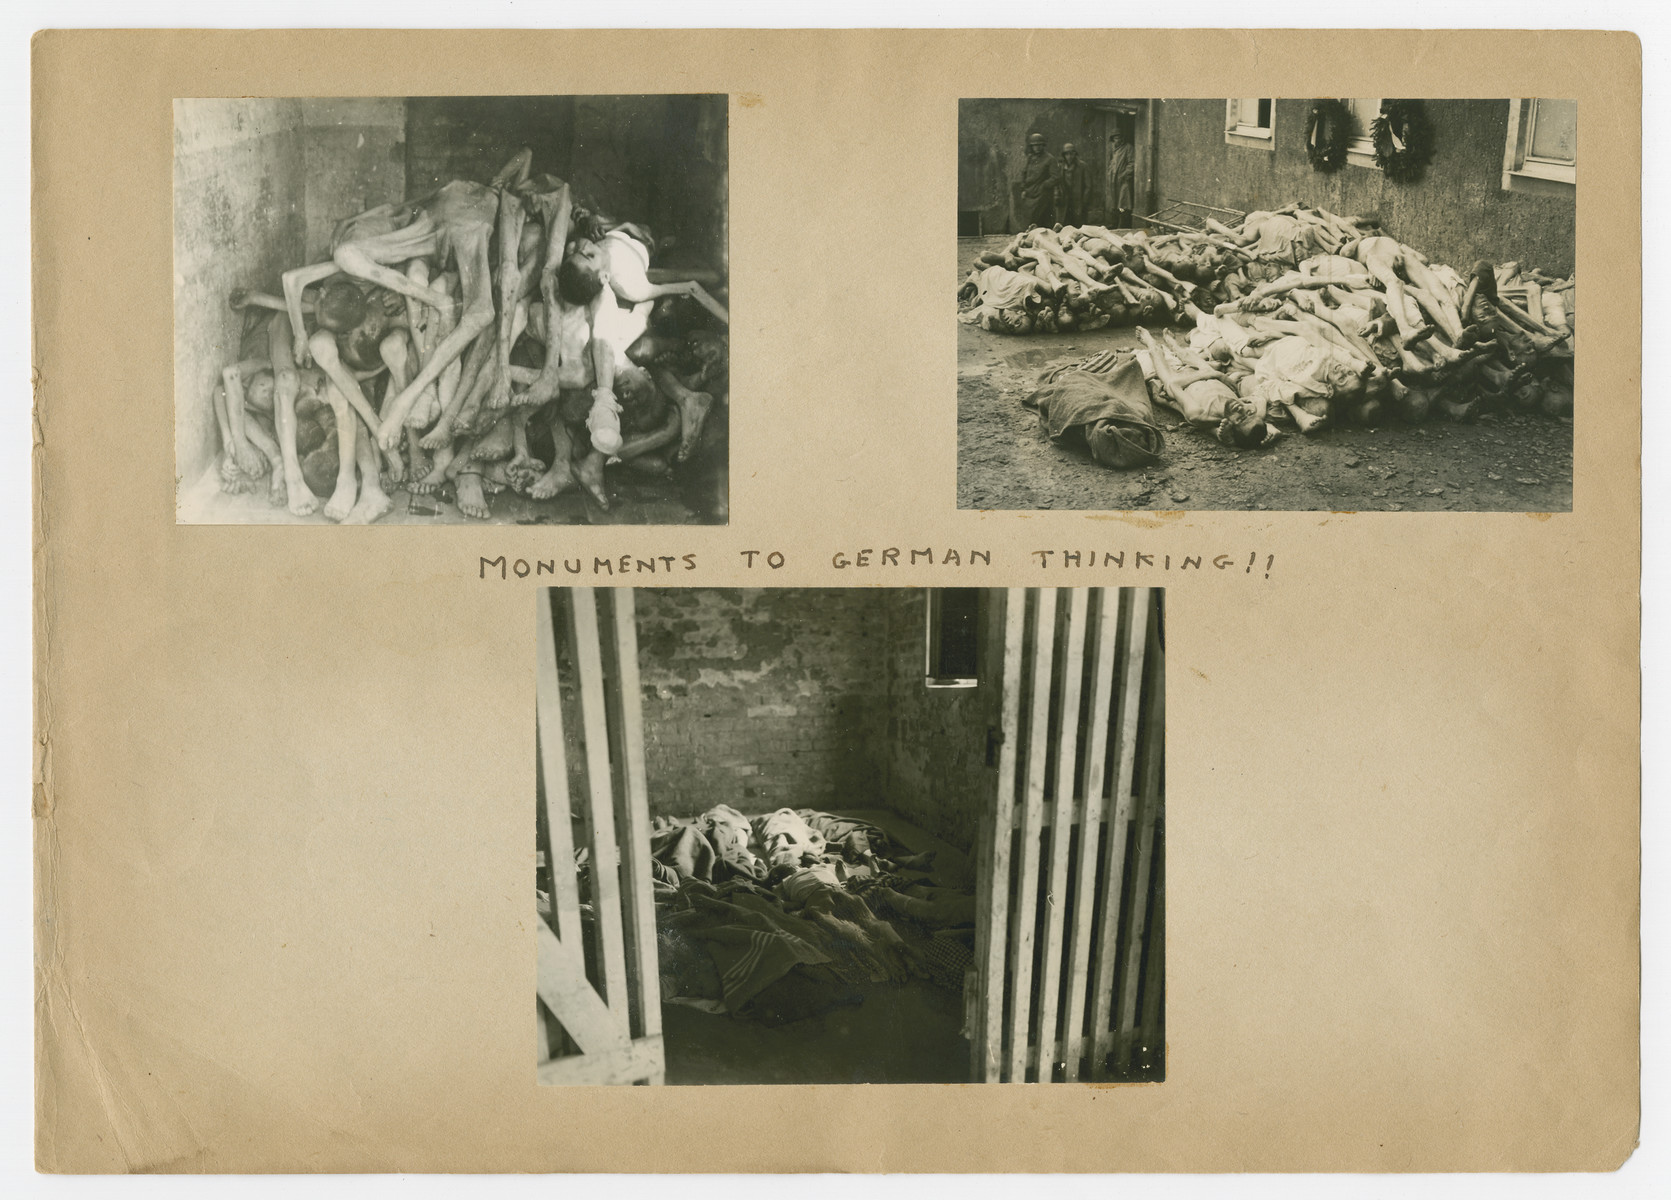 """Pictures of corpses pasted into a photograph album titled """"Buchenwald/or a Glance at German """"Kultur"""""""" by Murray Bucher.  The page is entitled """"Monuments to German Thinking!!"""""""